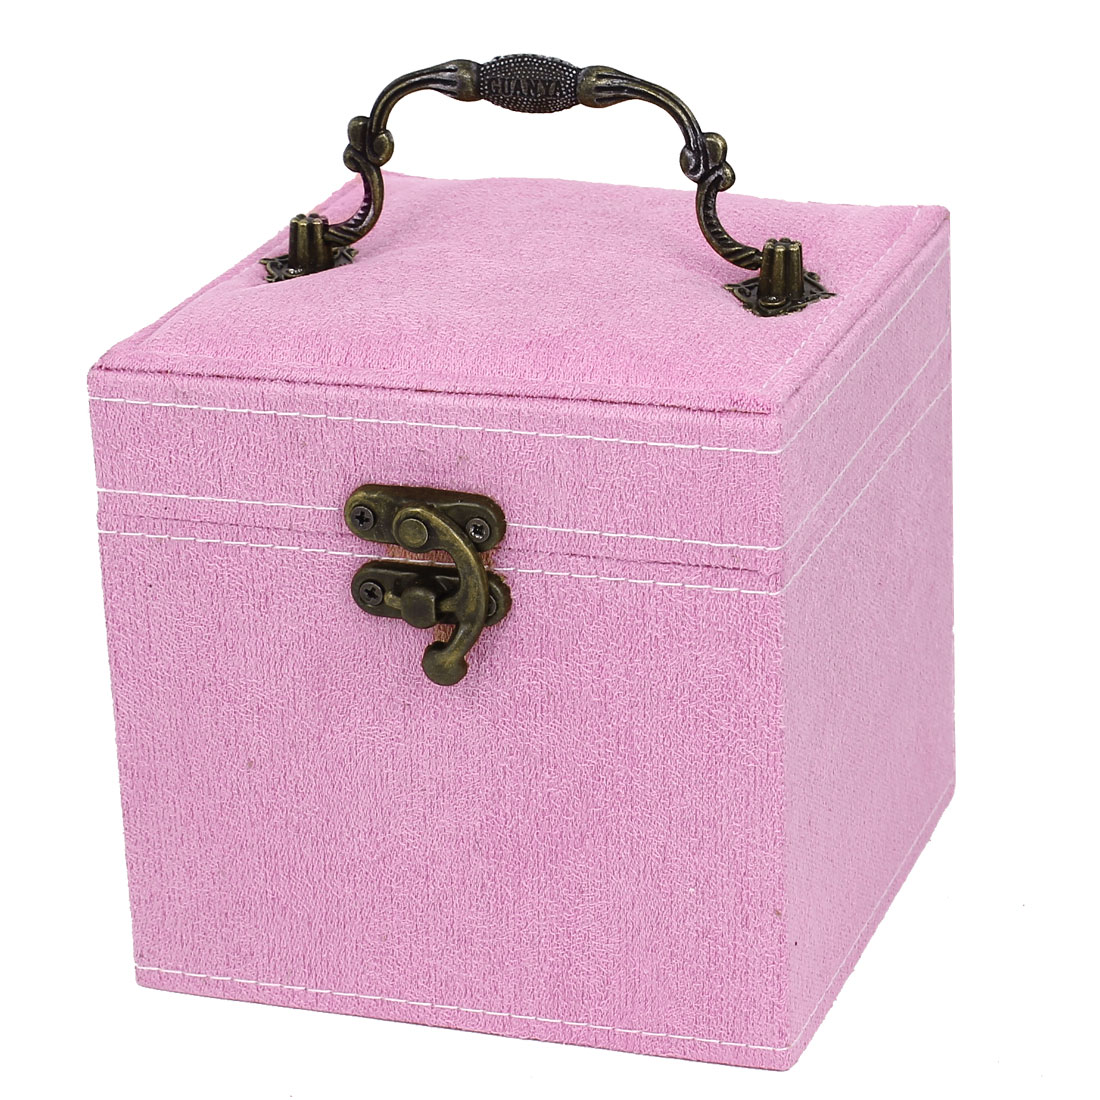 Portable Flannel Wrapped 3-Layers Jewelry Box Case Earrings Rings Organizer Pink